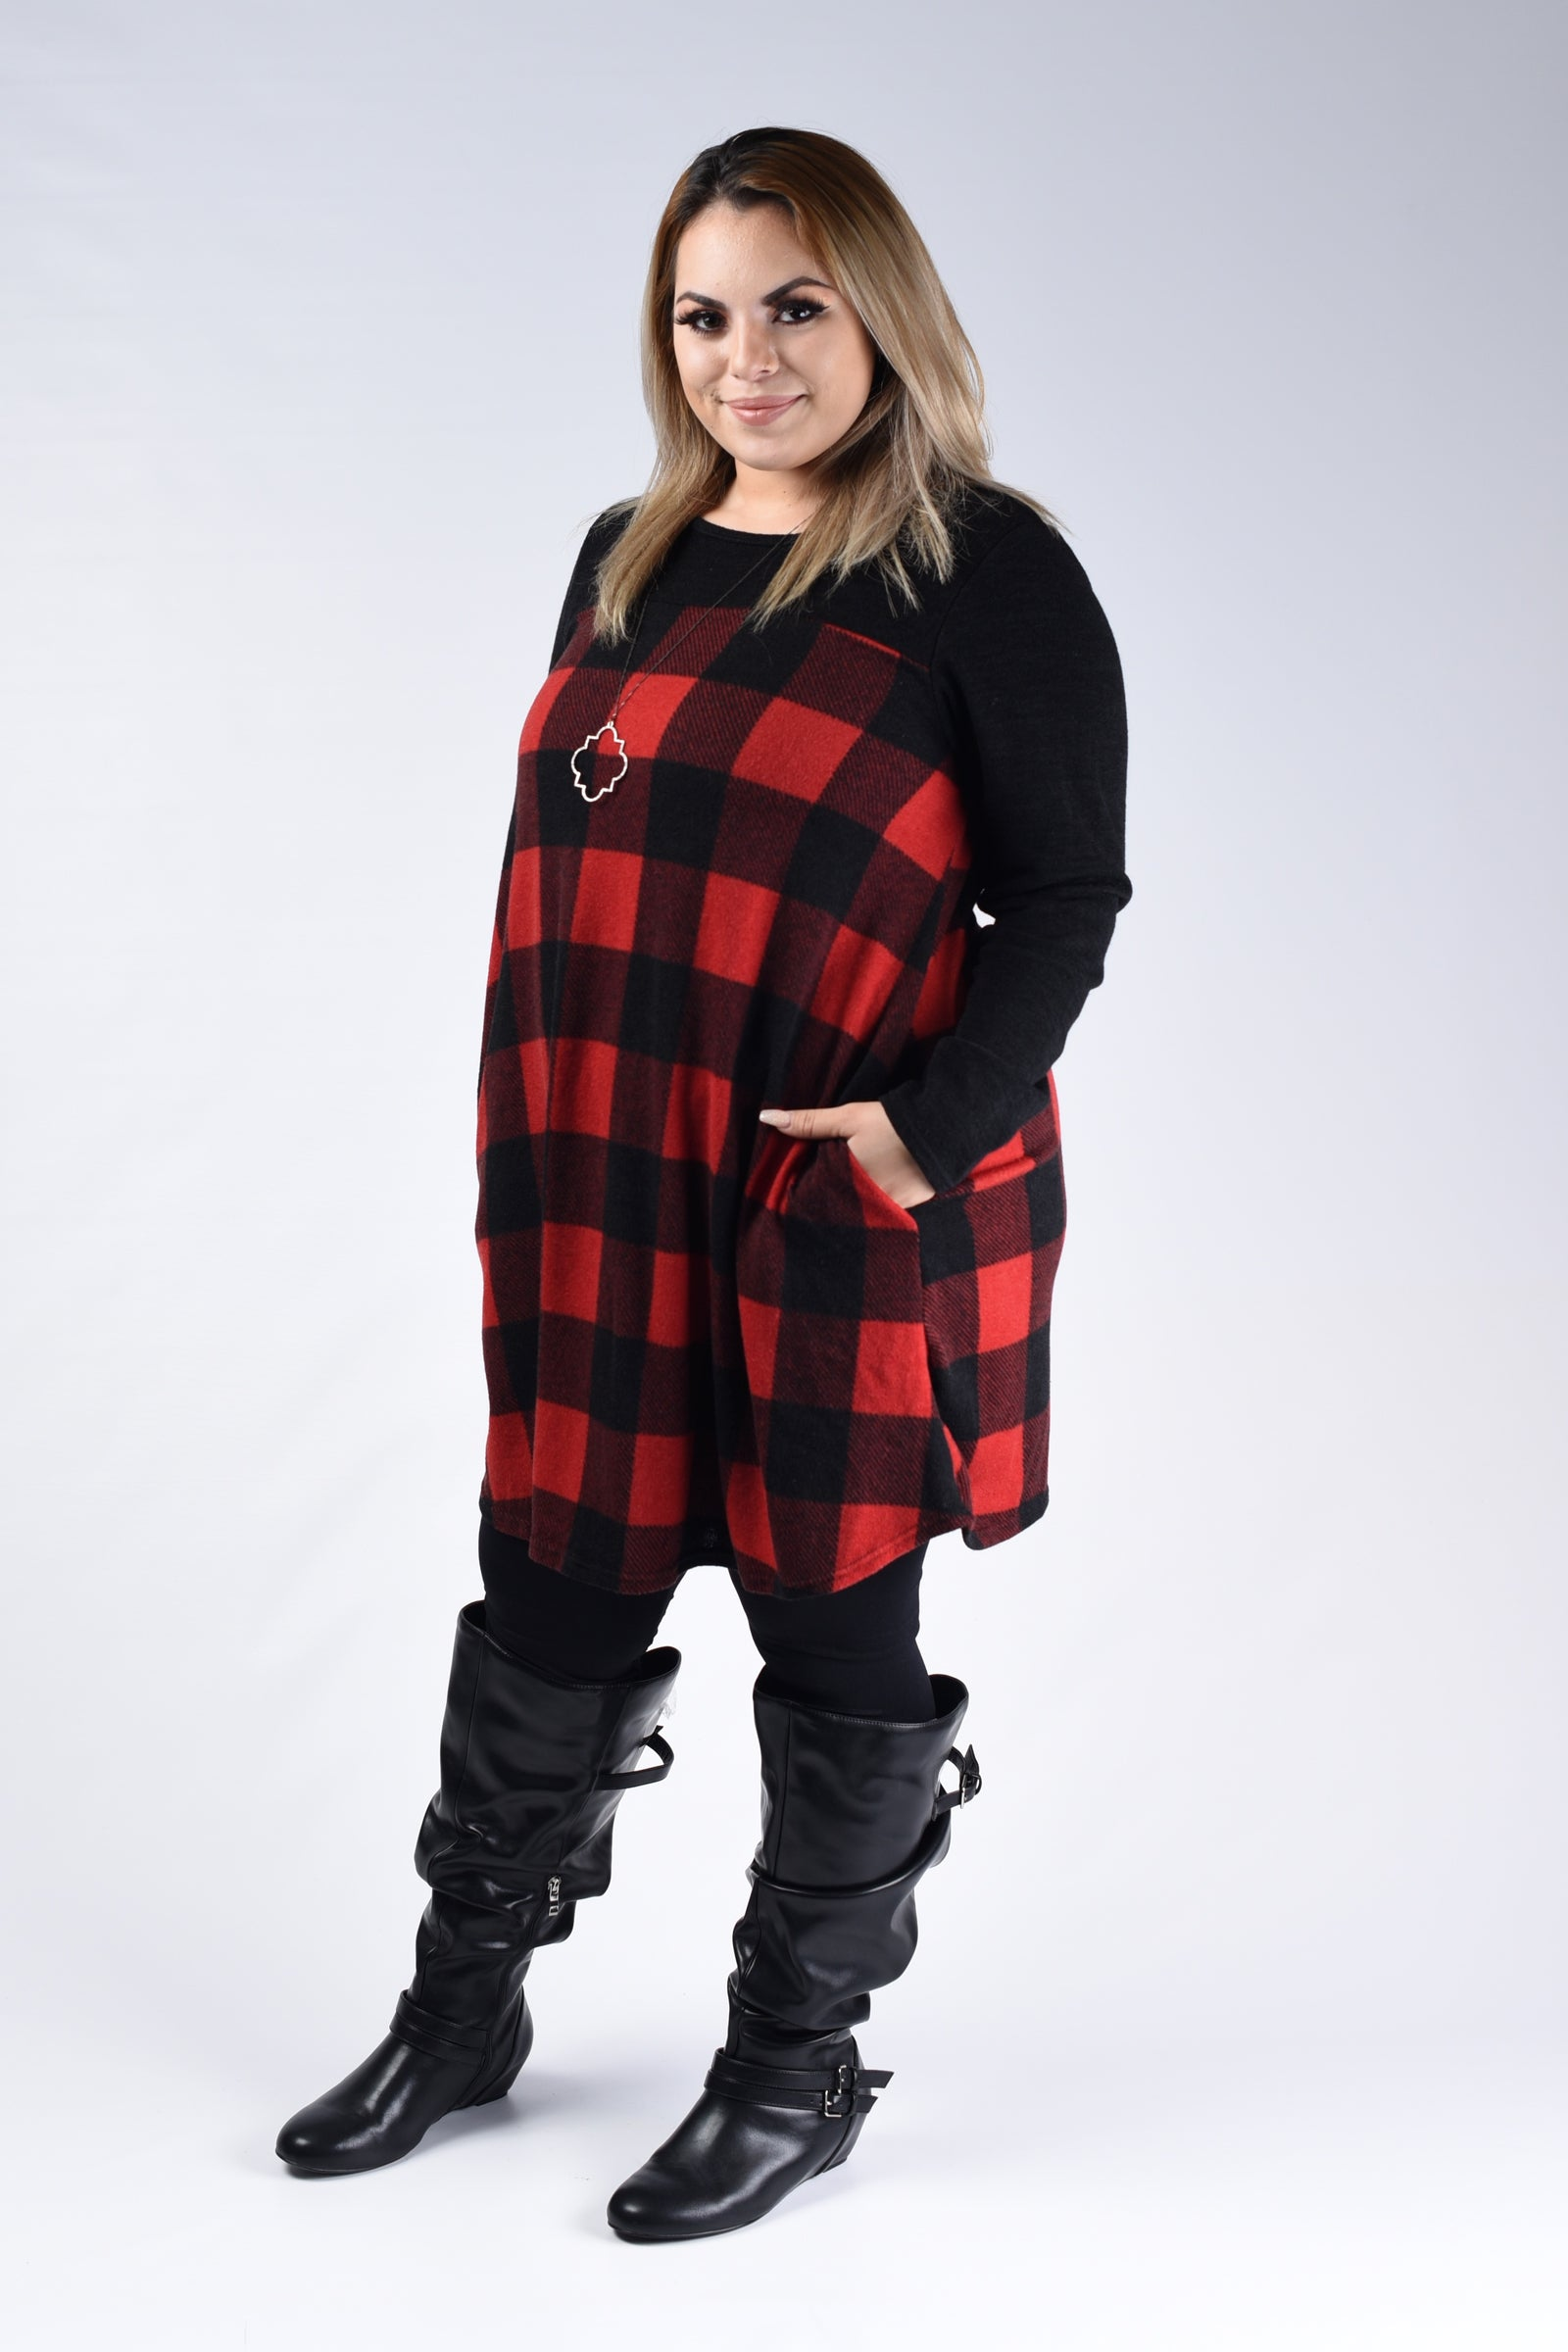 Buffalo Plaid Dress - Black & Red - www.mycurvystore.com - Curvy Boutique - Plus Size